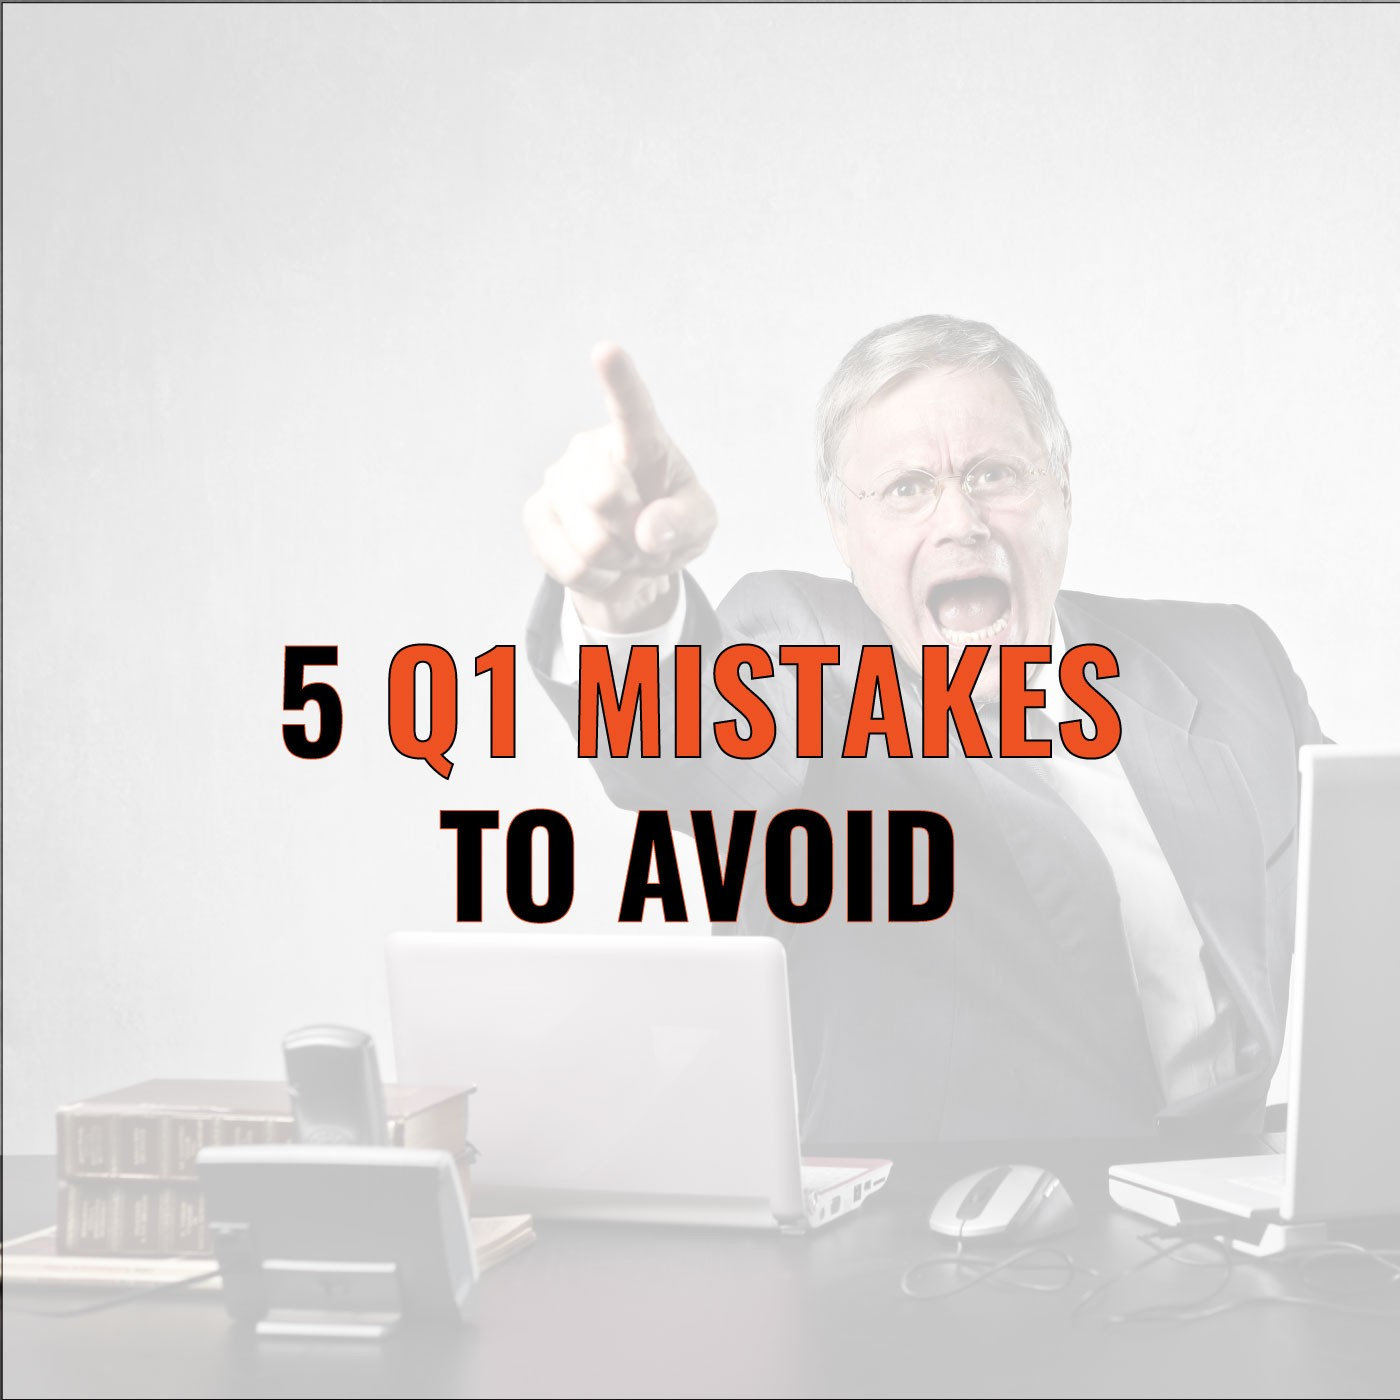 Brian Burns on 5 Q1 Mistakes to Avoid